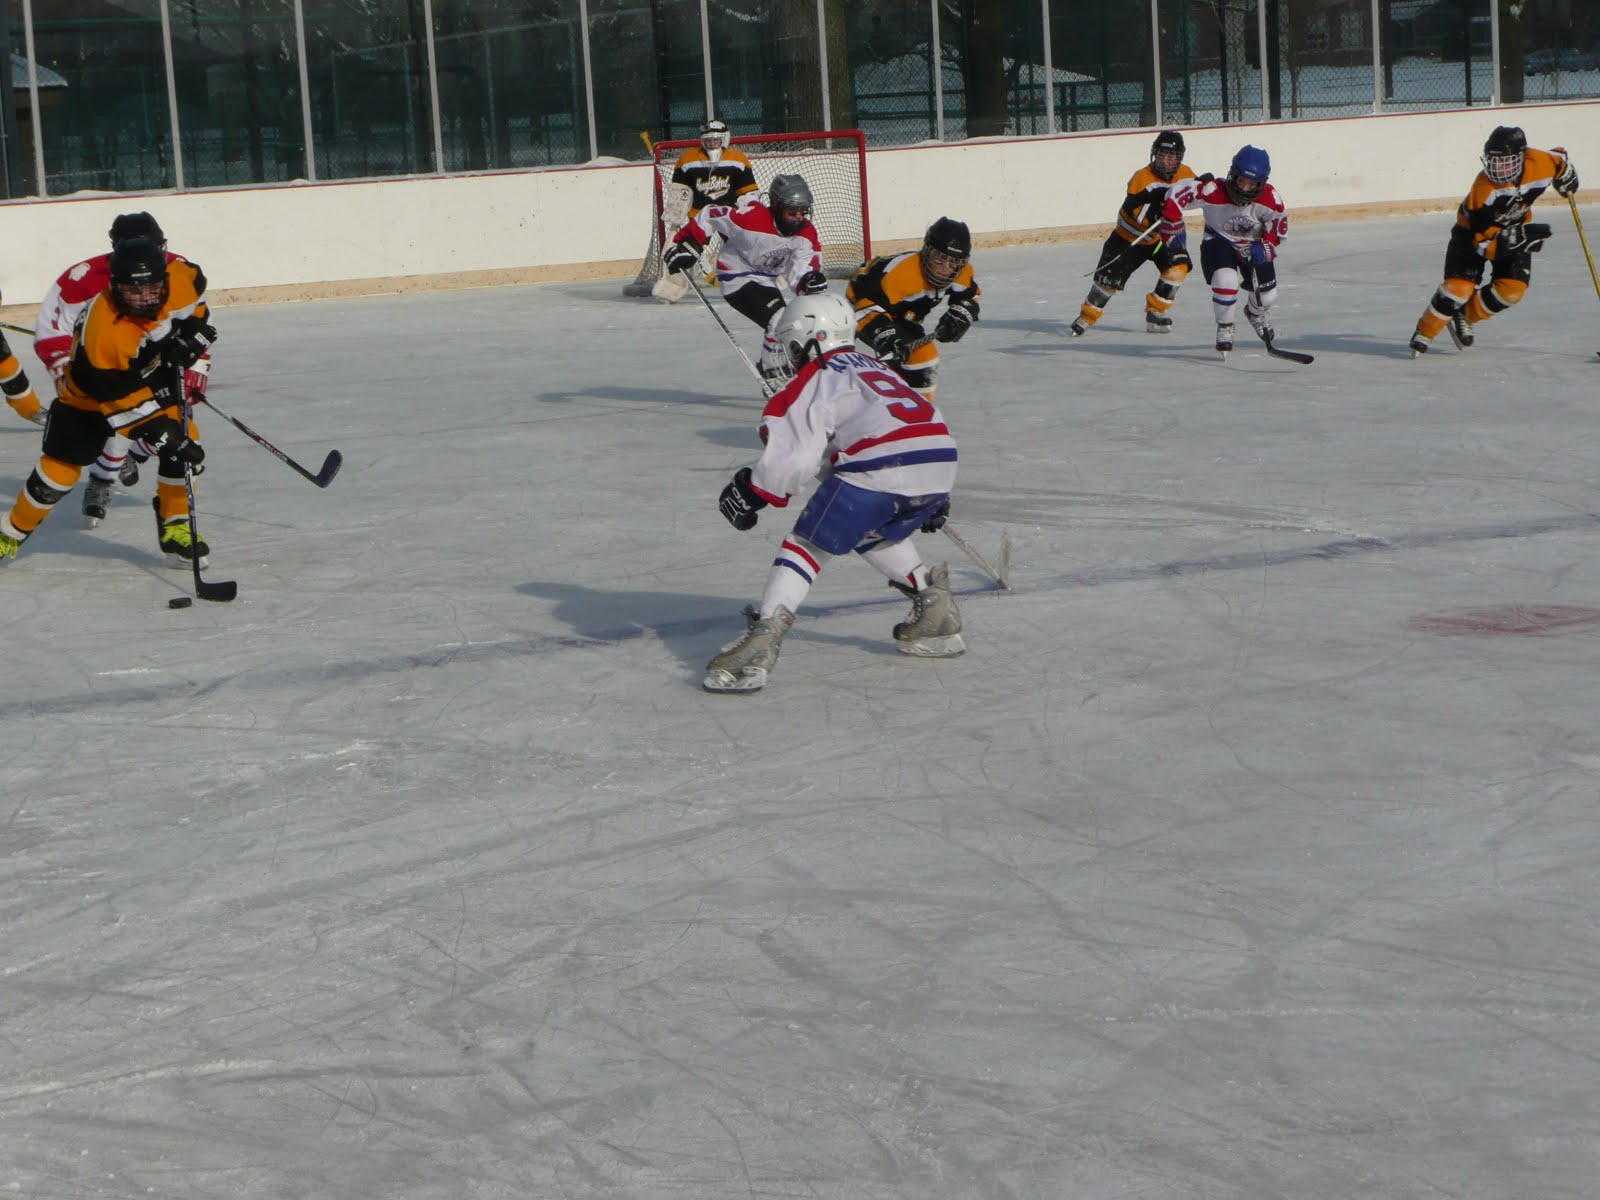 Travel 01 Livonia Lancers Faced Off With The Pee Wee A Honeybaked Dragons From Hazel Park